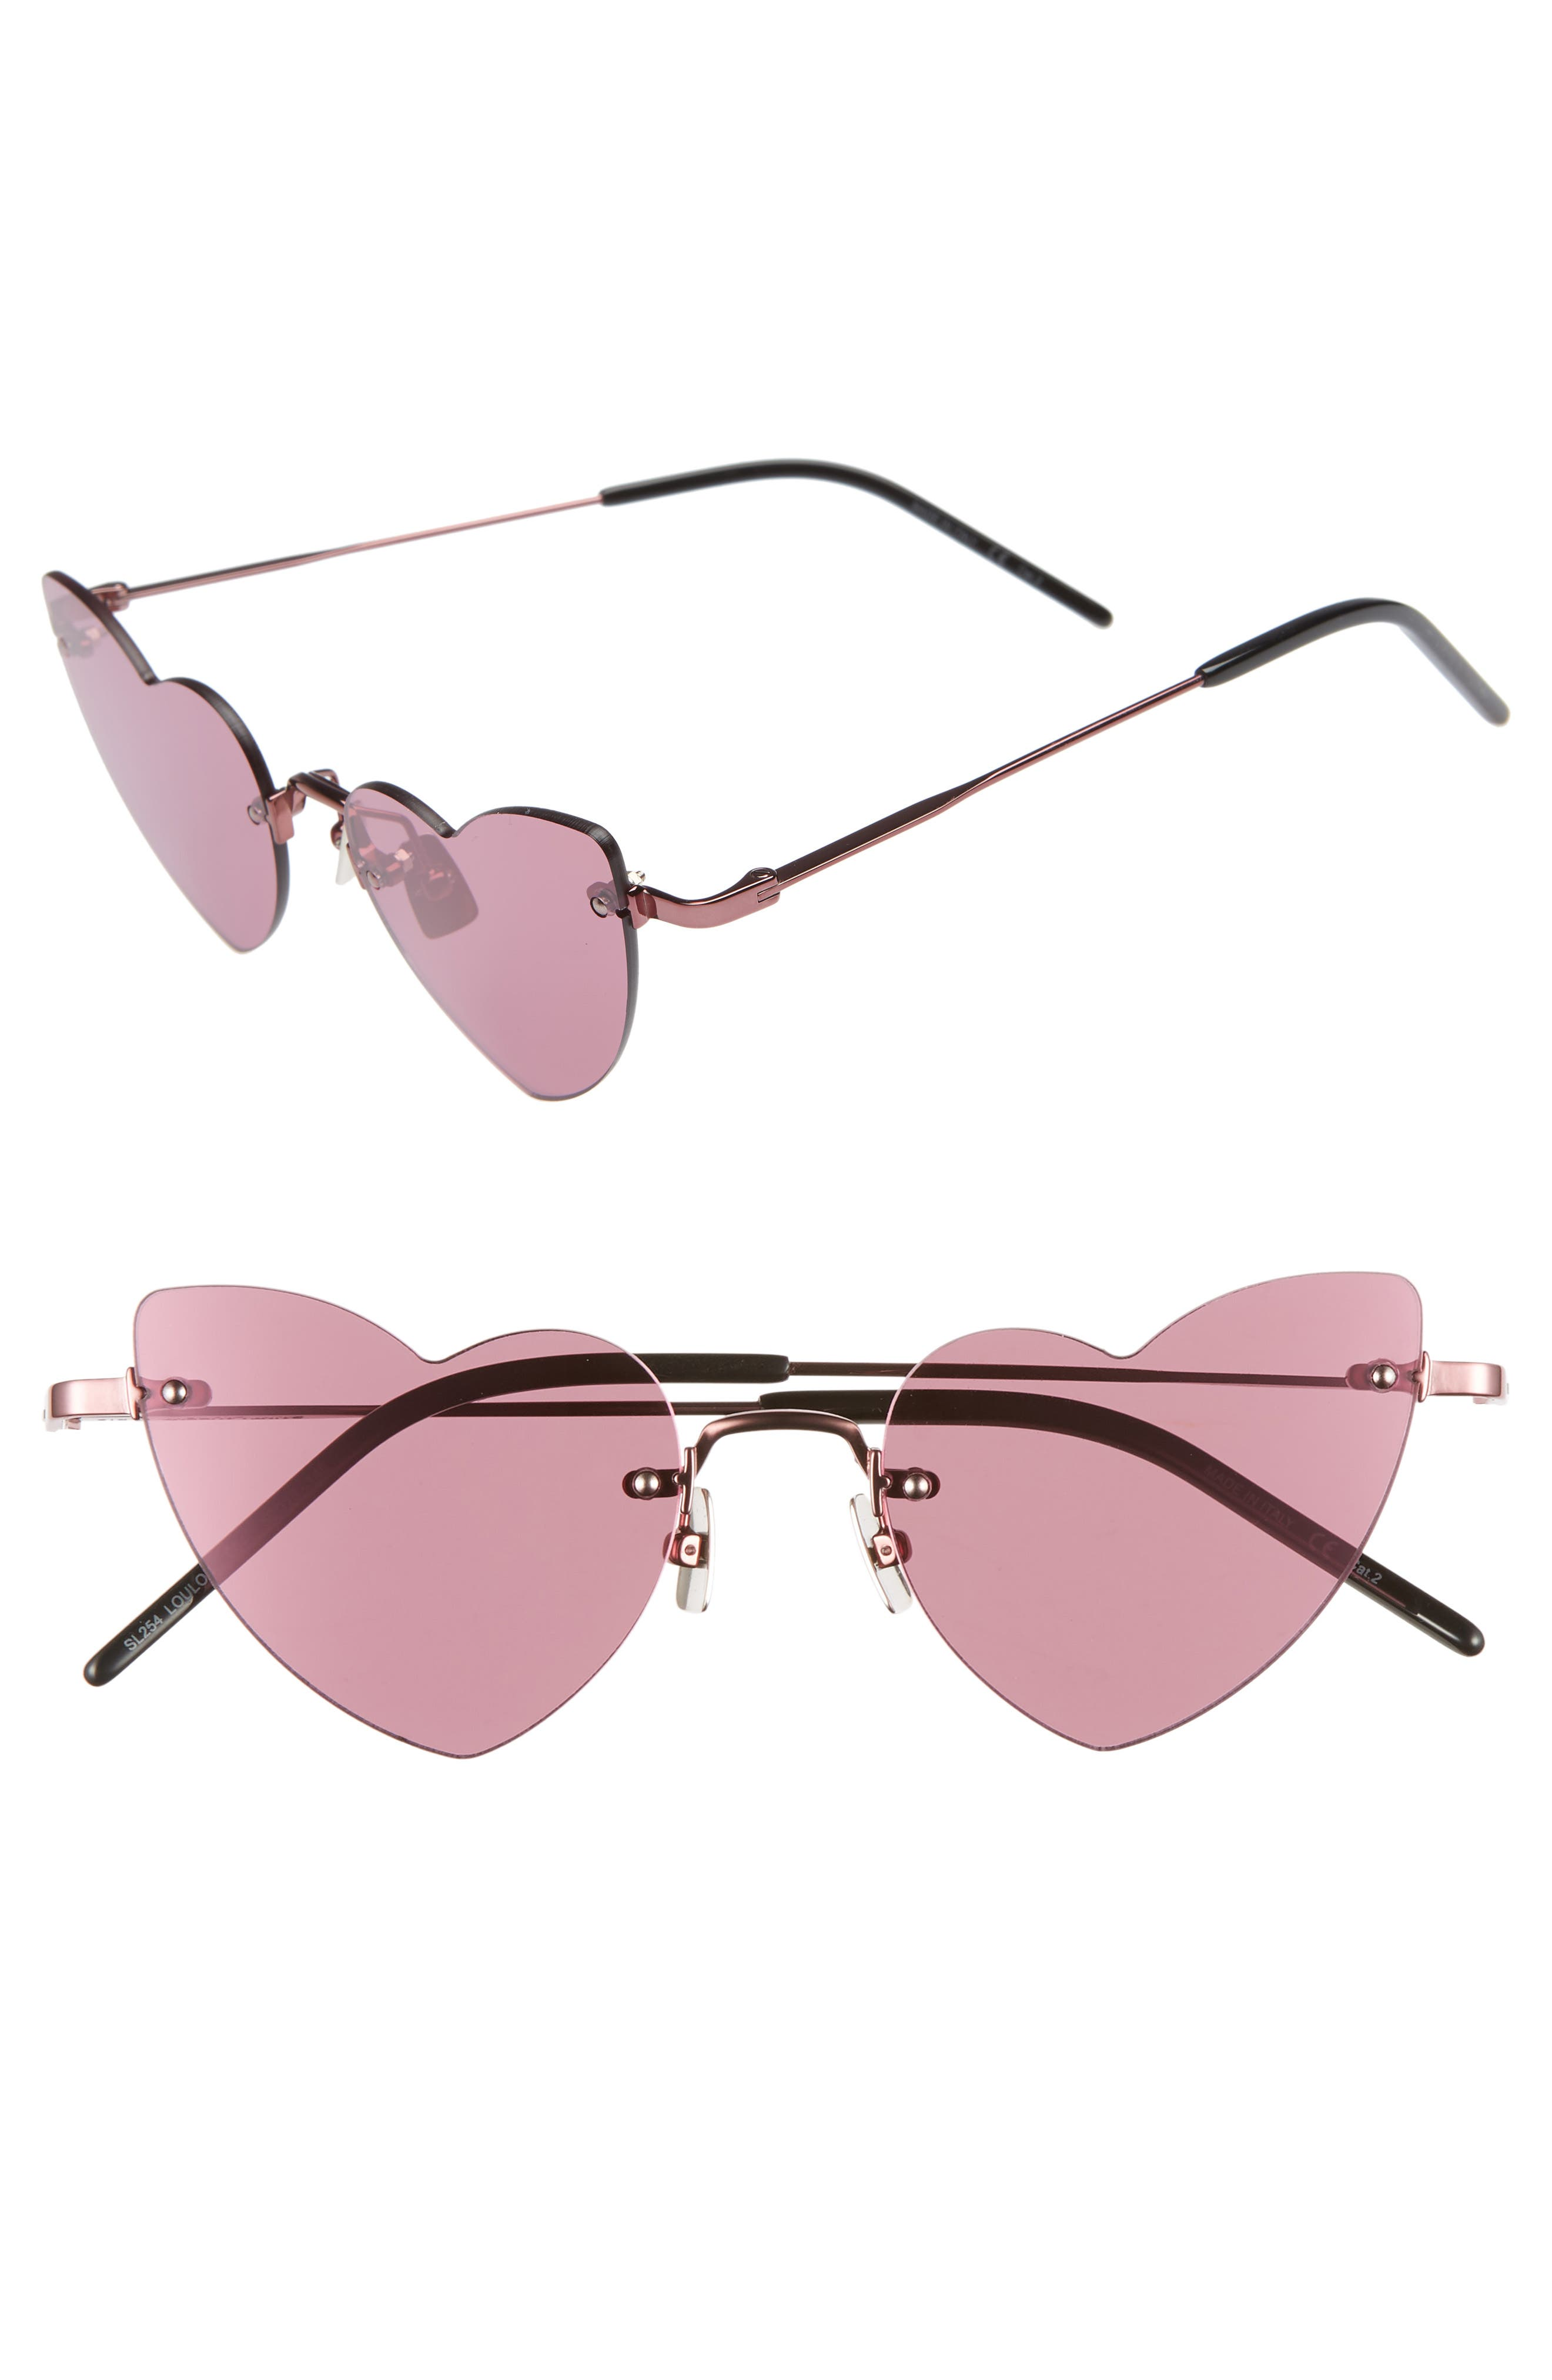 Saint Laurent 50Mm Rimless Heart Shaped Sunglasses - Pink/ Pink Flash